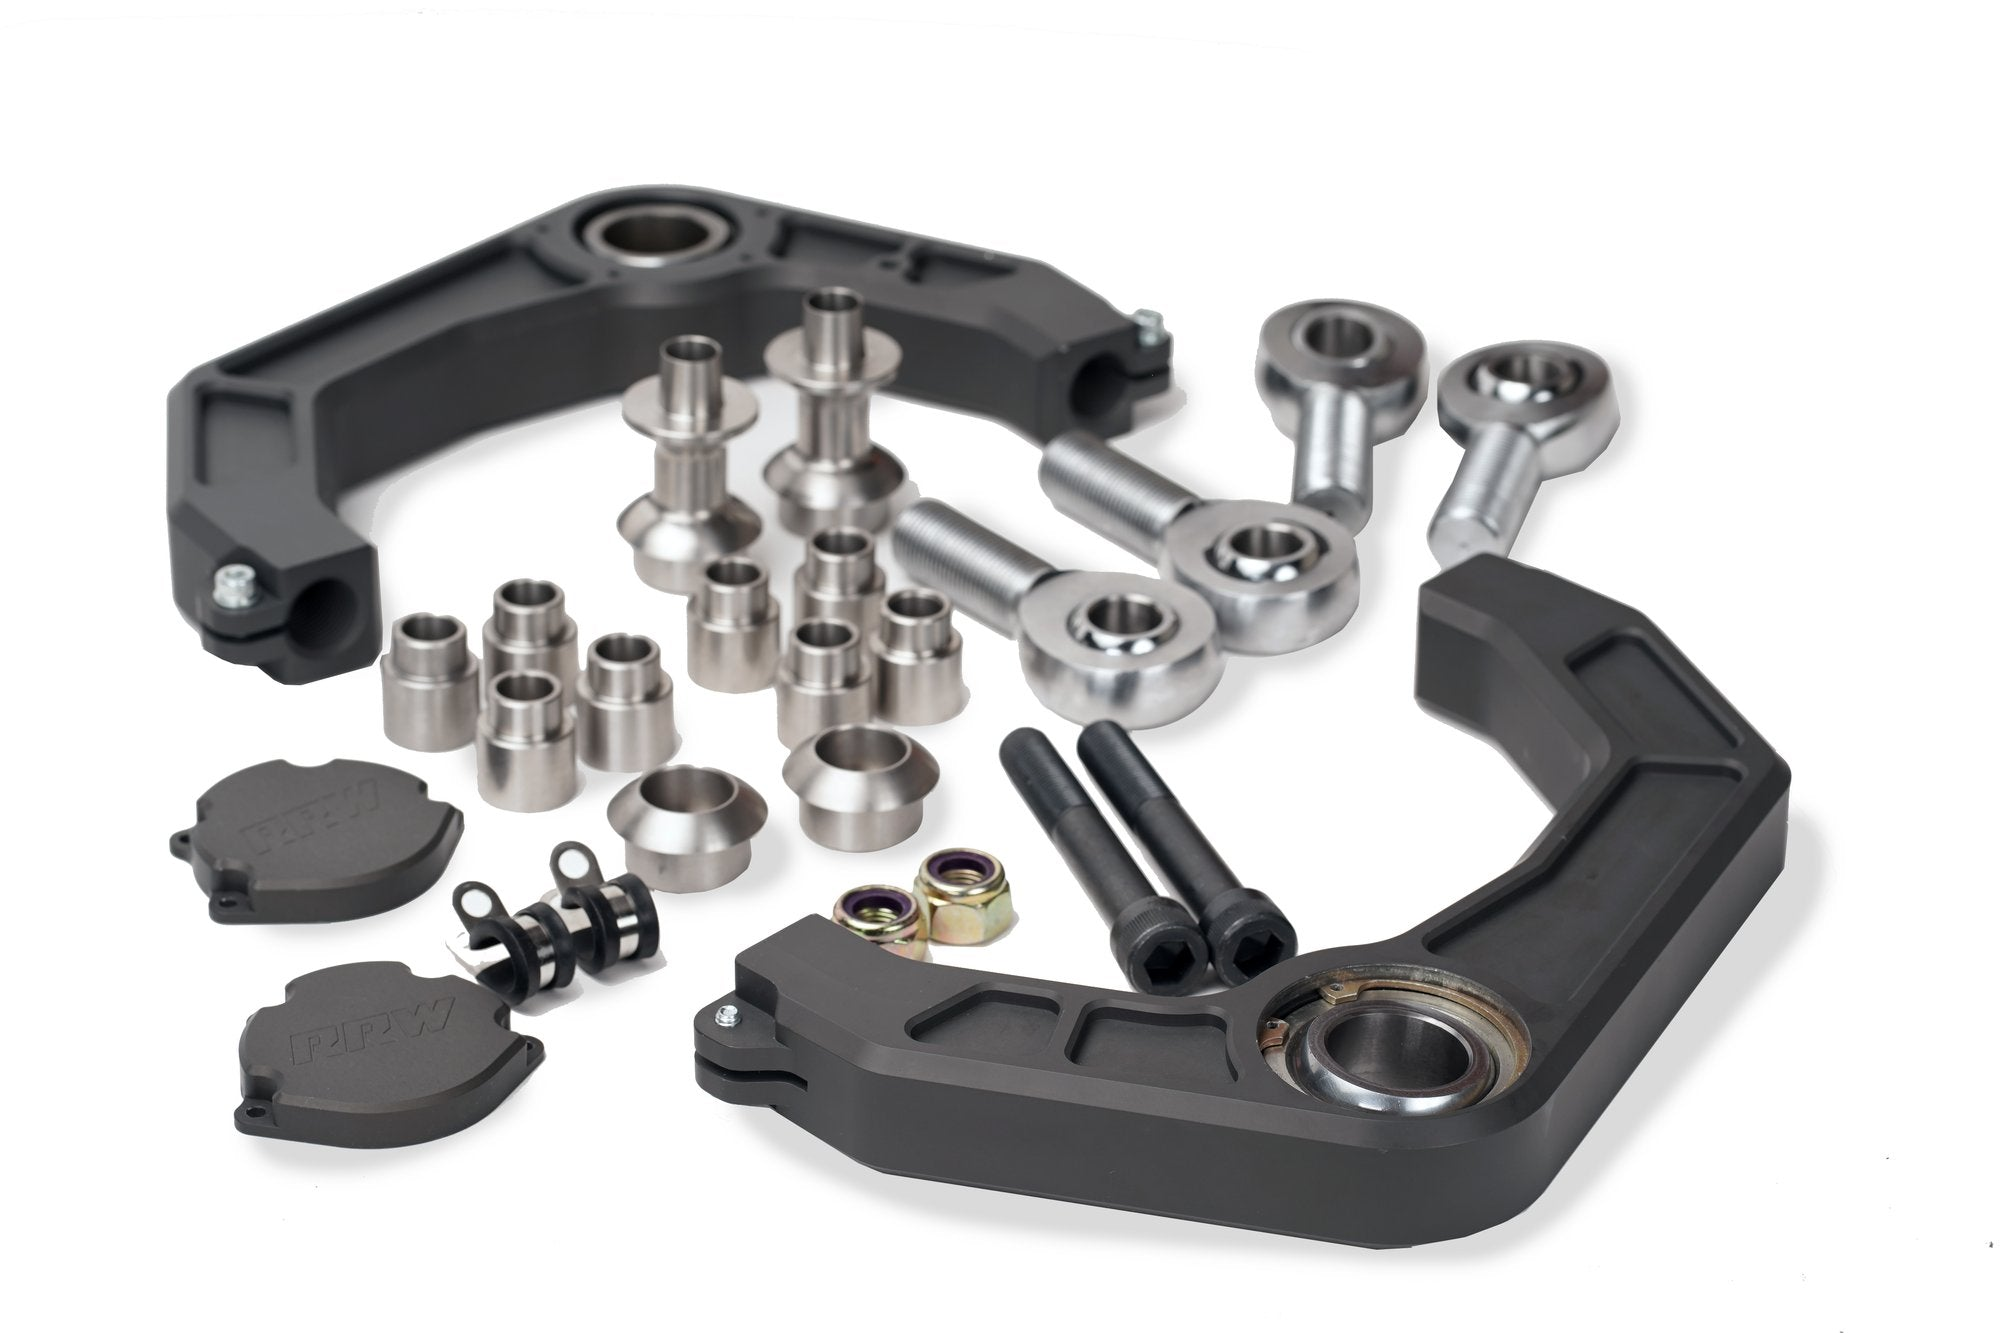 Billet 6061-T6 Aluminum Adjustable Upper Control Arms (UCA) - Toyota Tacoma/4Runner